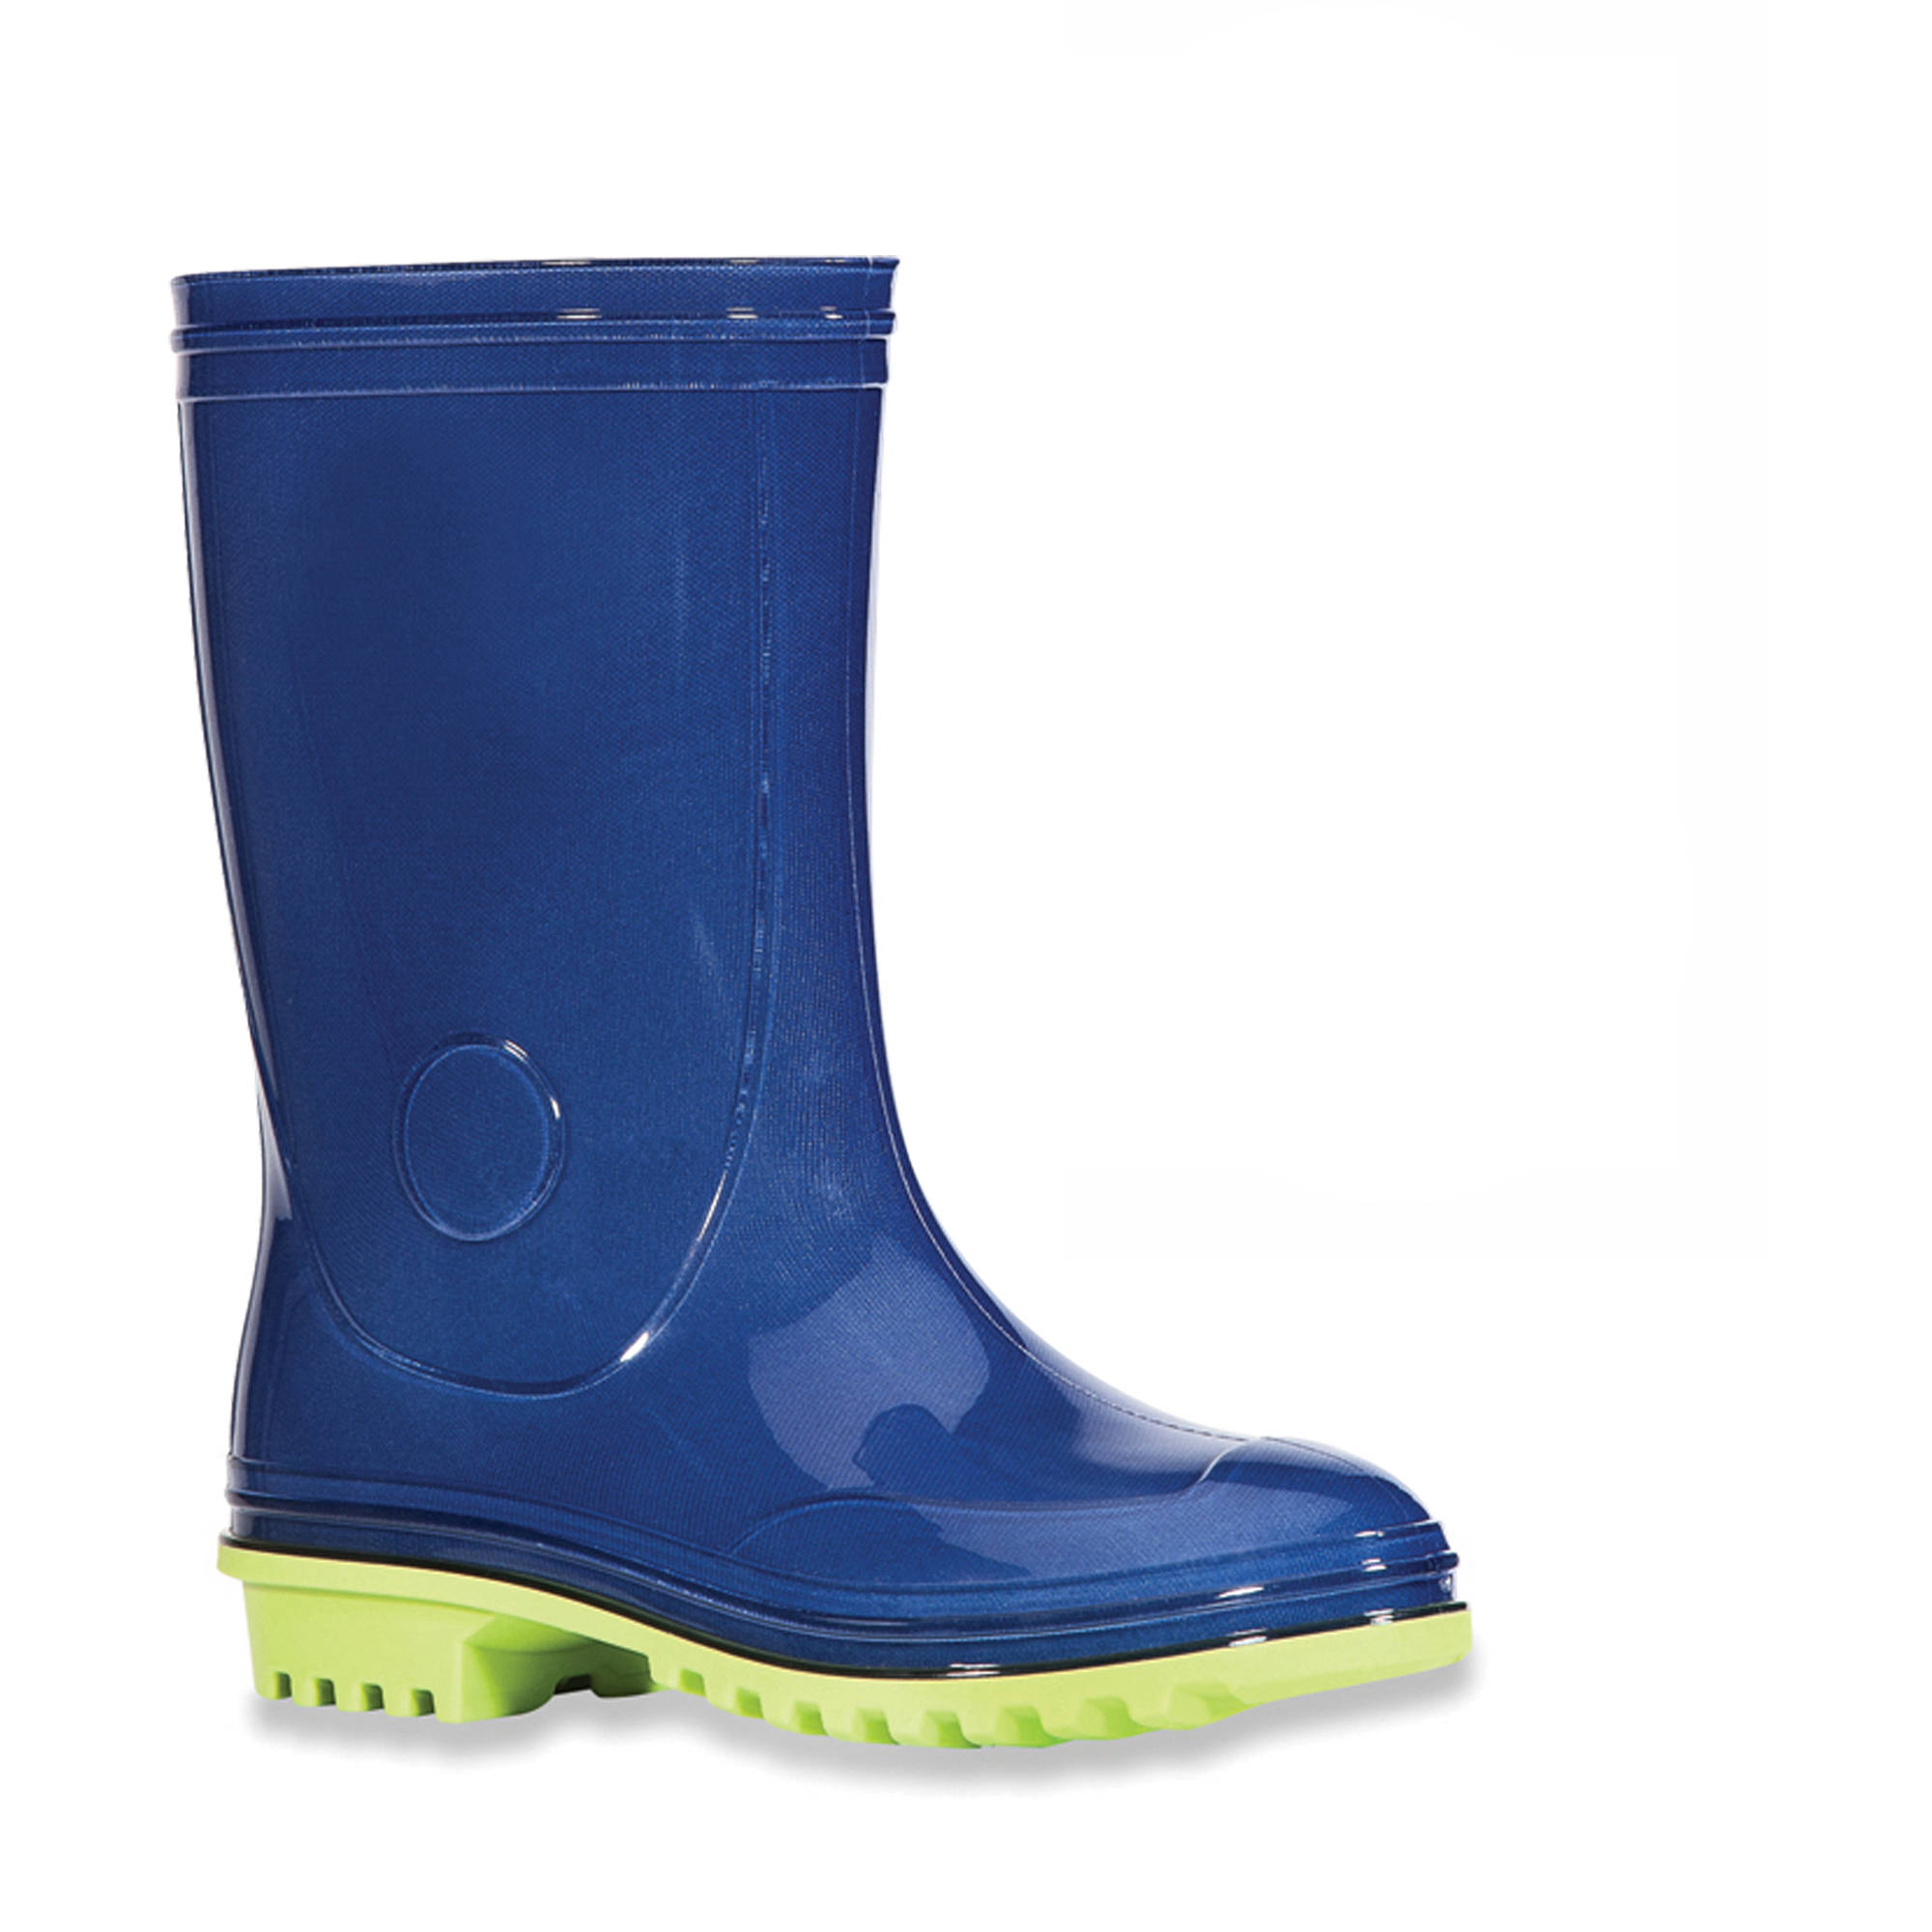 Uncategorized Boots Kitchen Appliances Discount Code rain boots boys basic colorblock boot